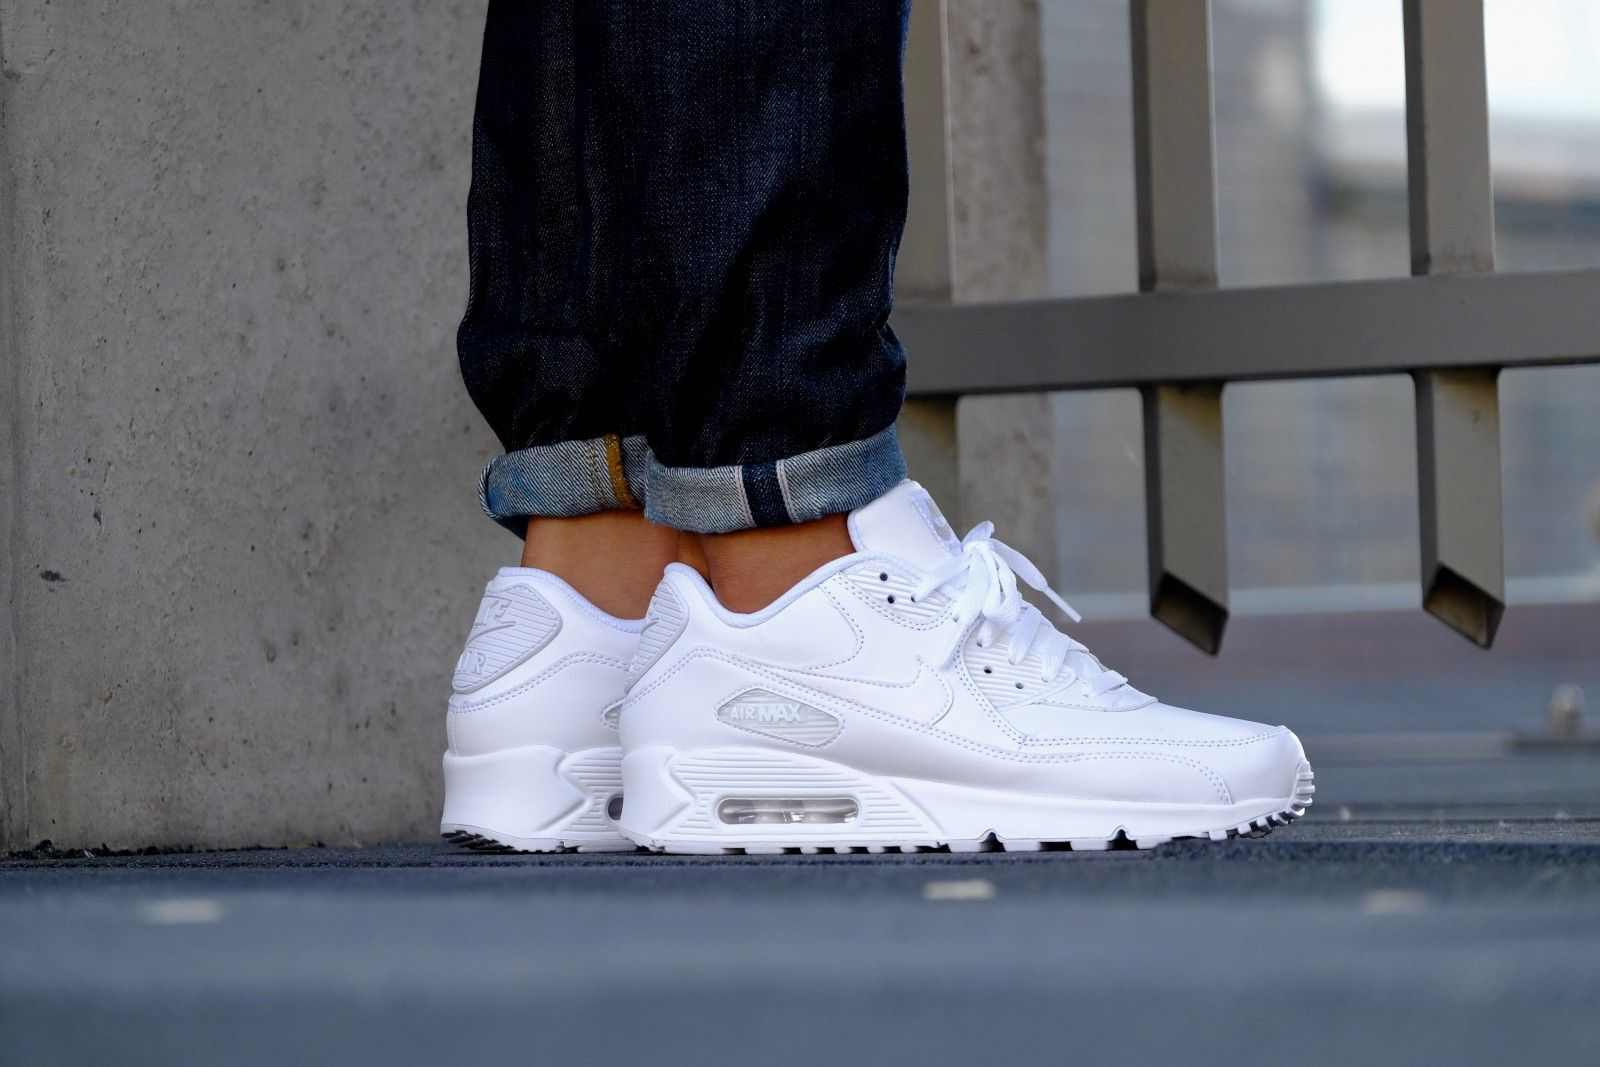 Fashion's Nike Men Leather All White Air Max 90 Nike Nike Nike